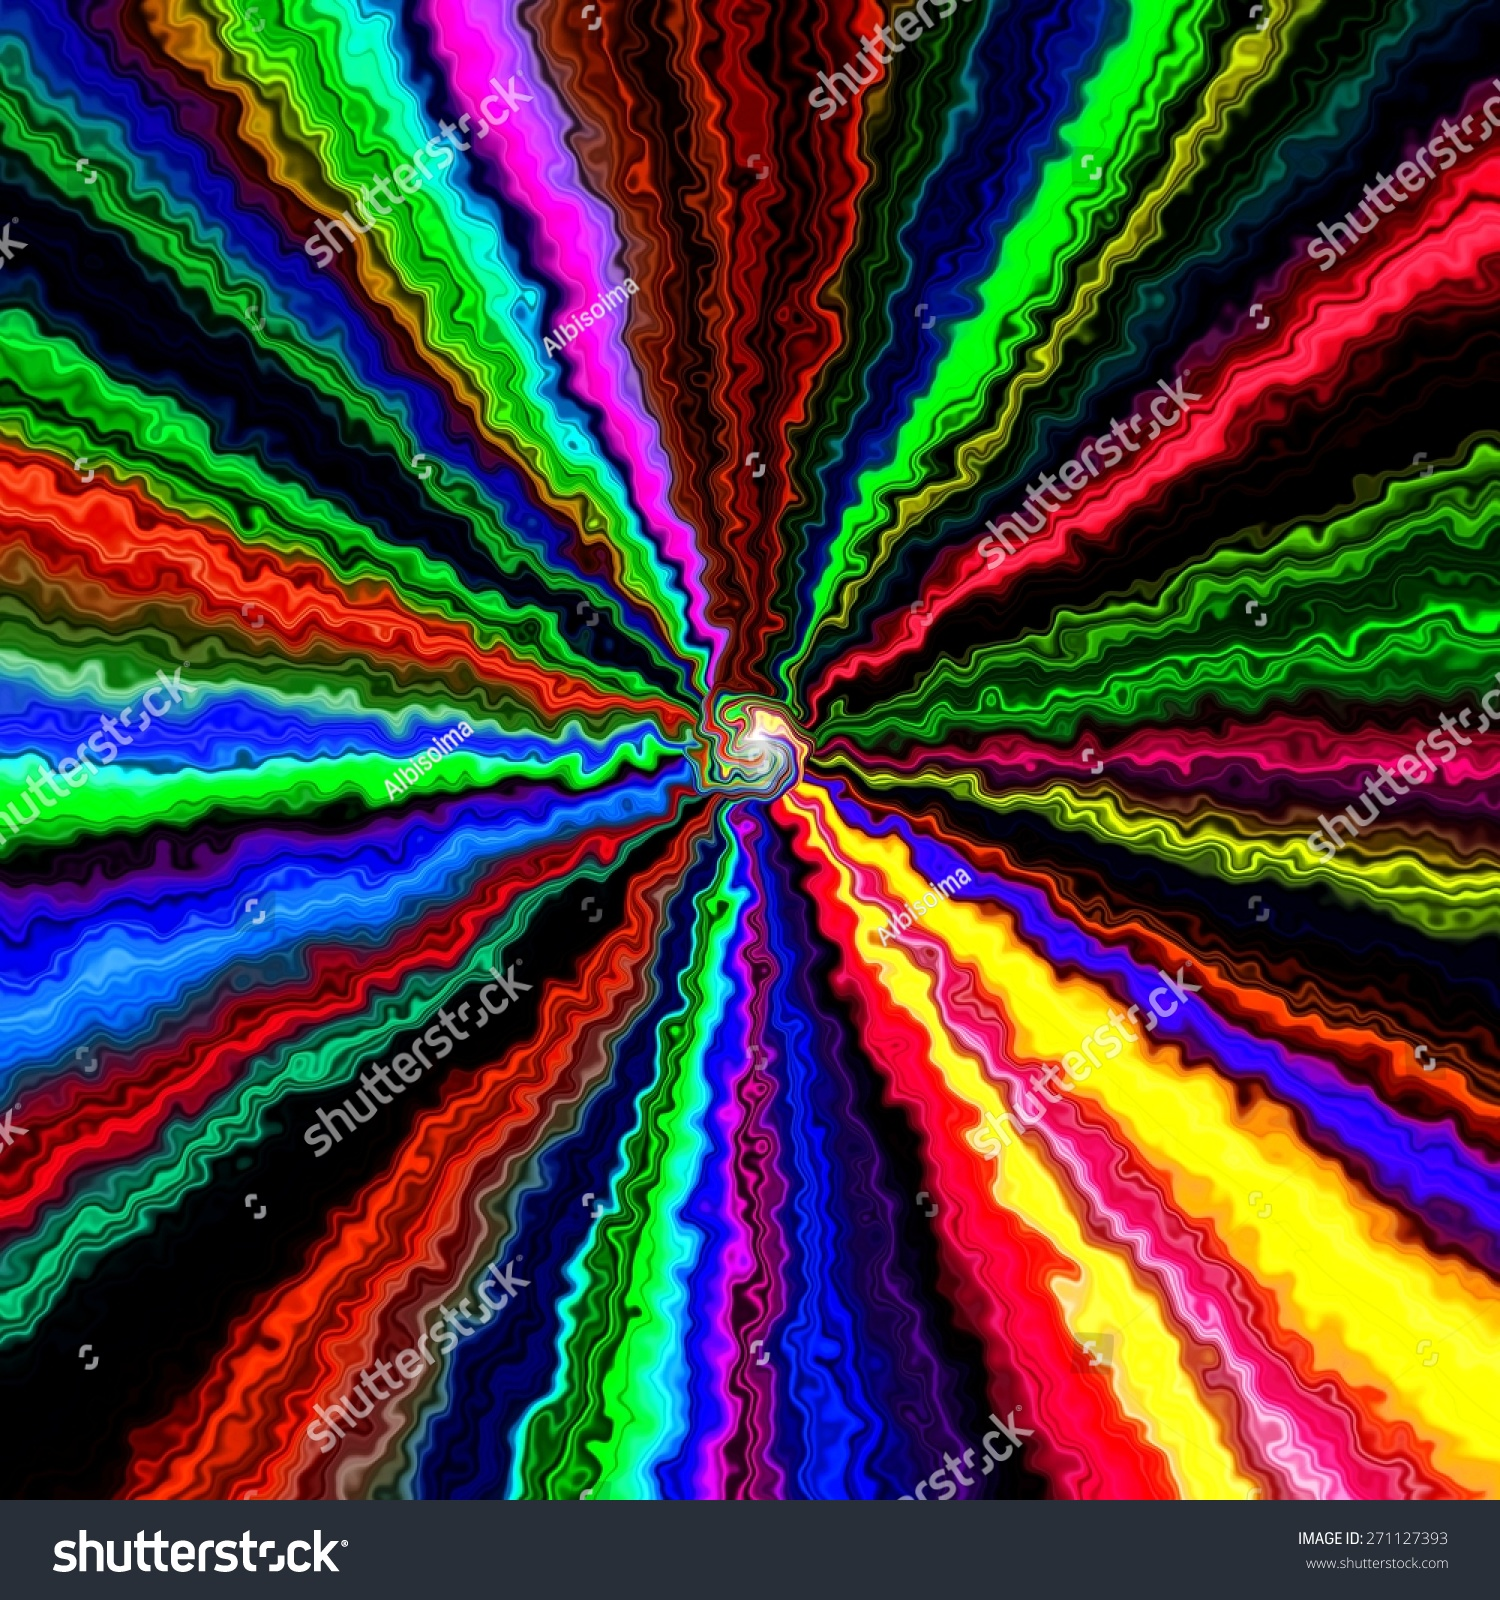 Crazy Abstract Melted Colorful Shapes As Wallpaper Stock